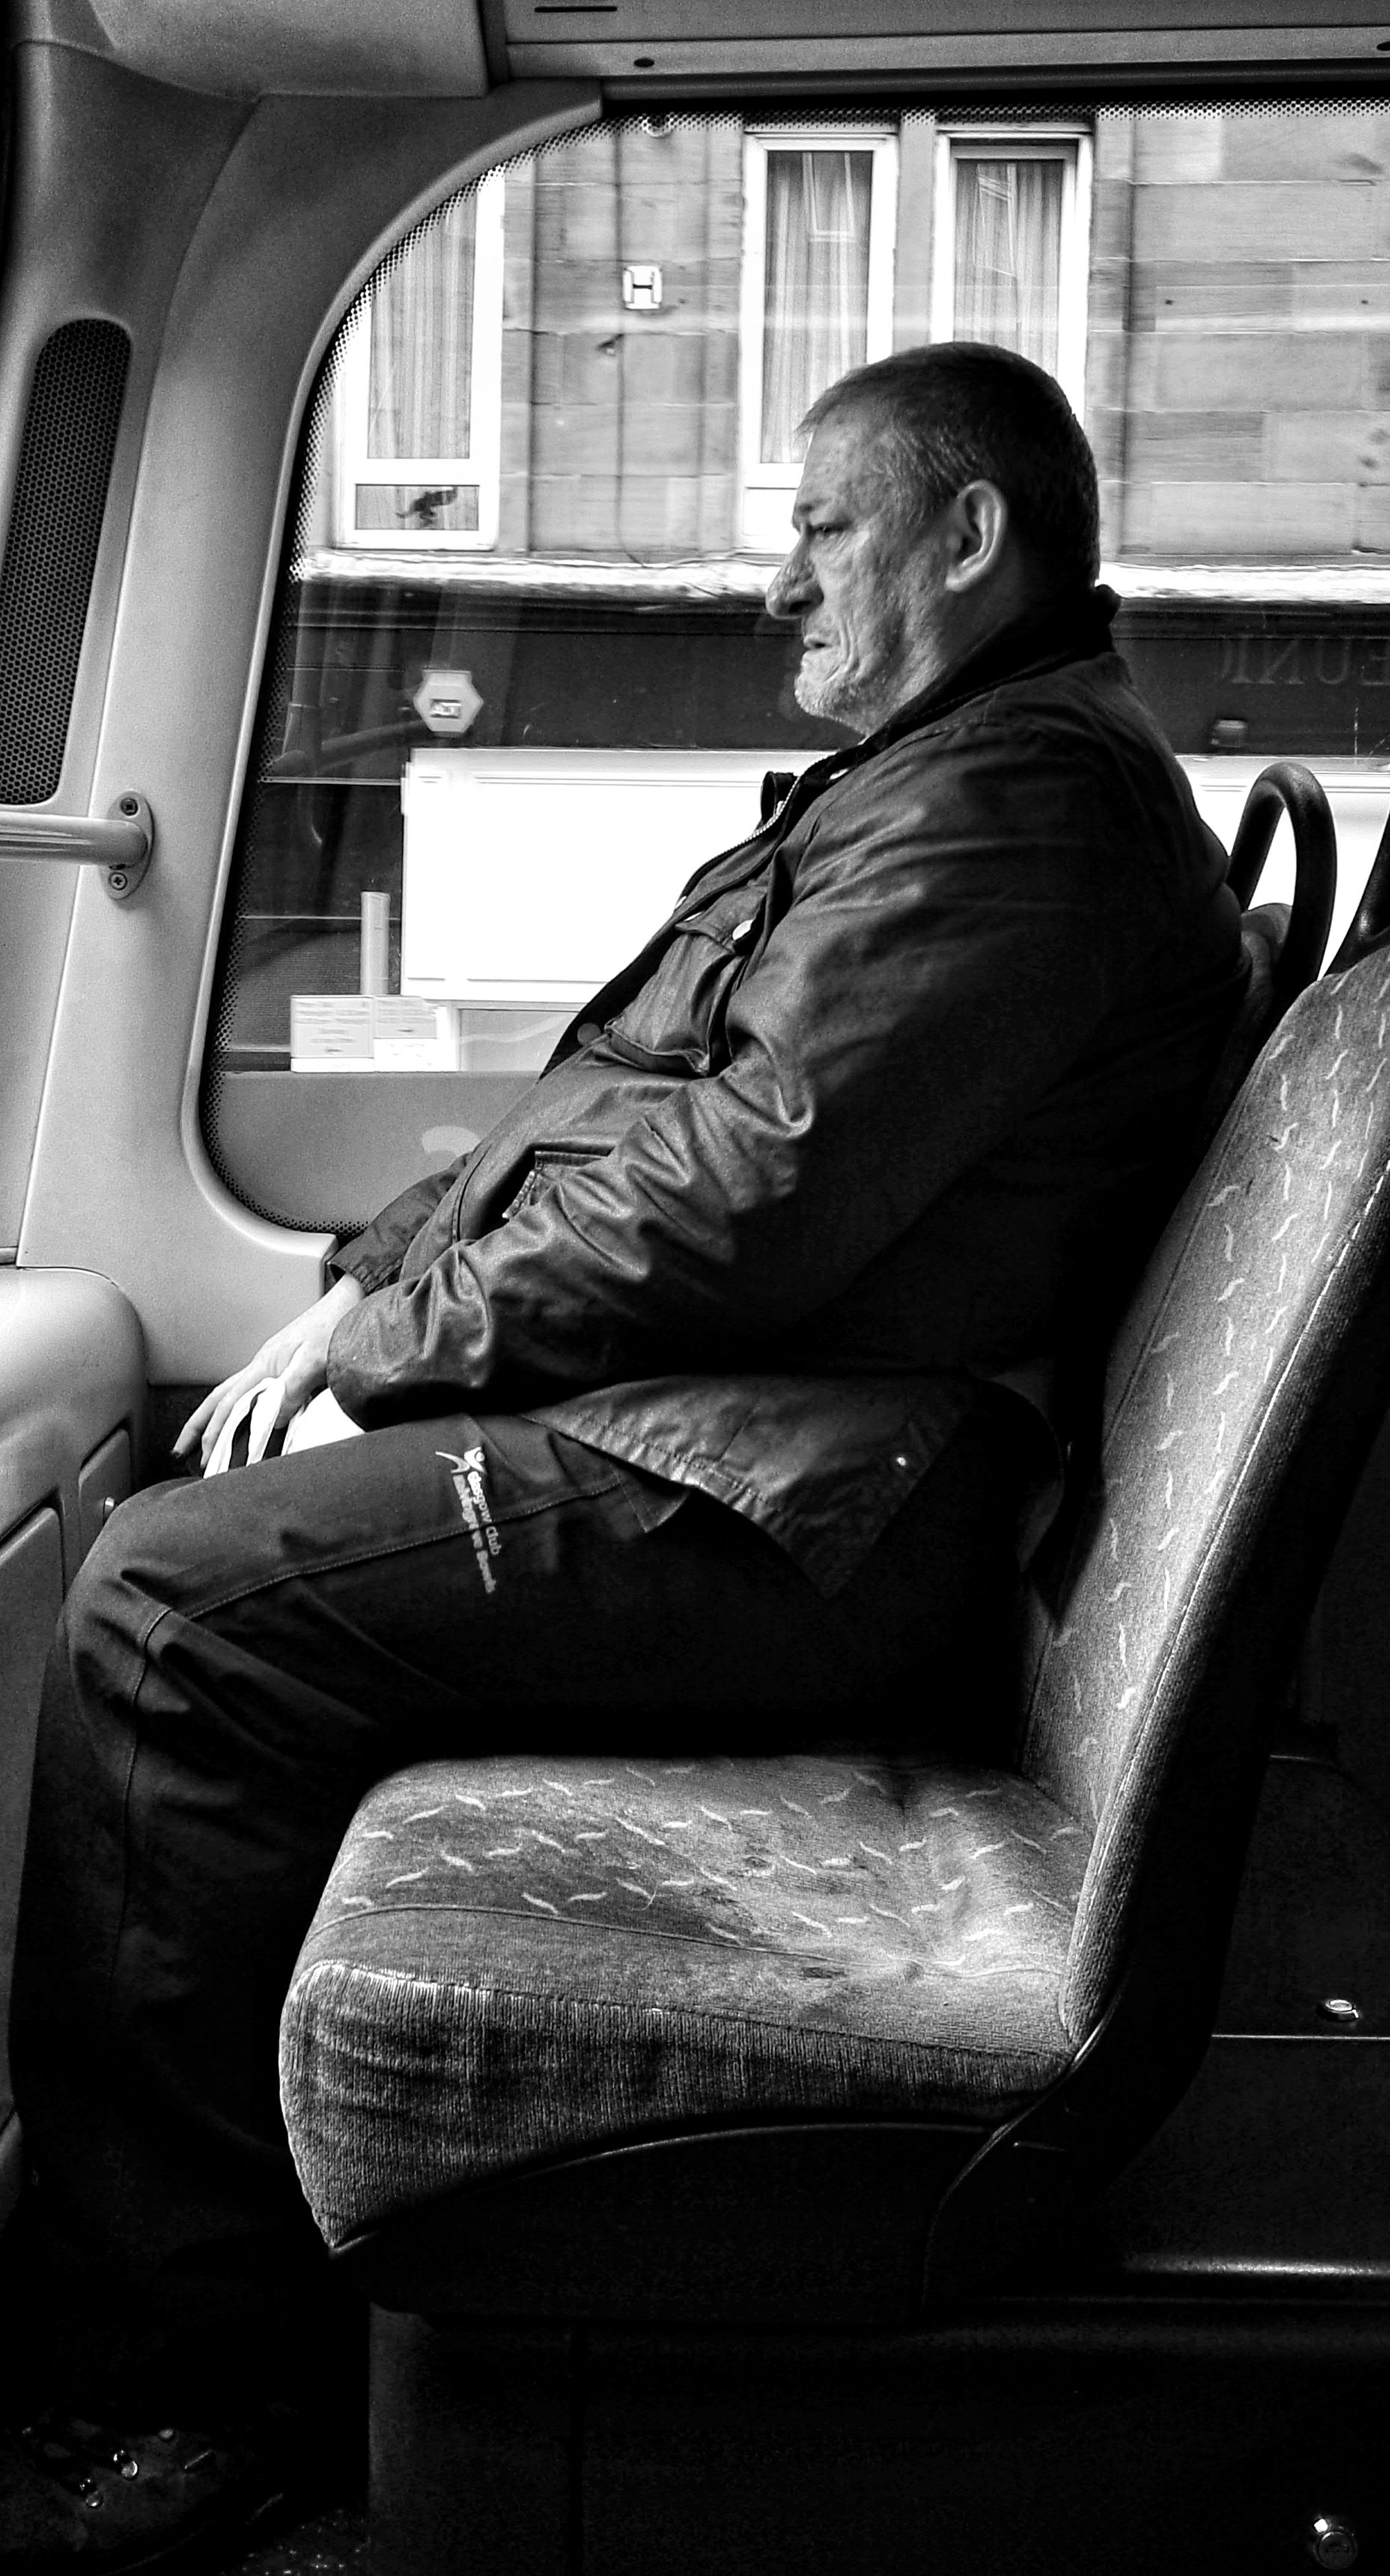 sitting, one person, real people, transportation, public transportation, casual clothing, side view, lifestyles, leisure activity, young adult, vehicle seat, full length, legs crossed at knee, day, relaxation, young women, warm clothing, indoors, adult, people